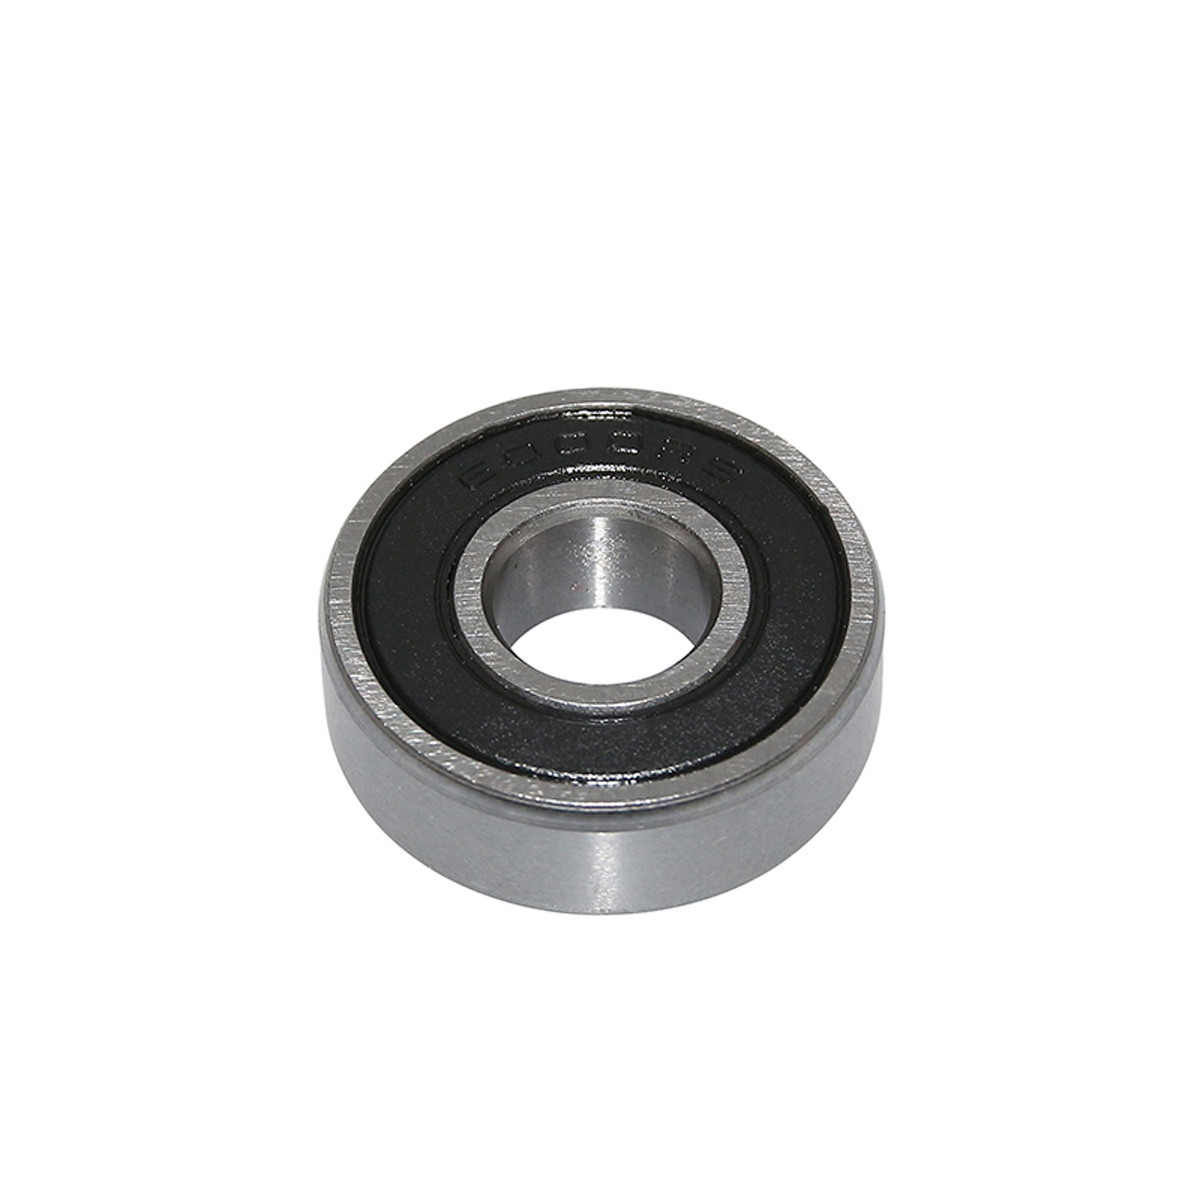 Roulement 6000 2RS - 10 x 26 x 8mm